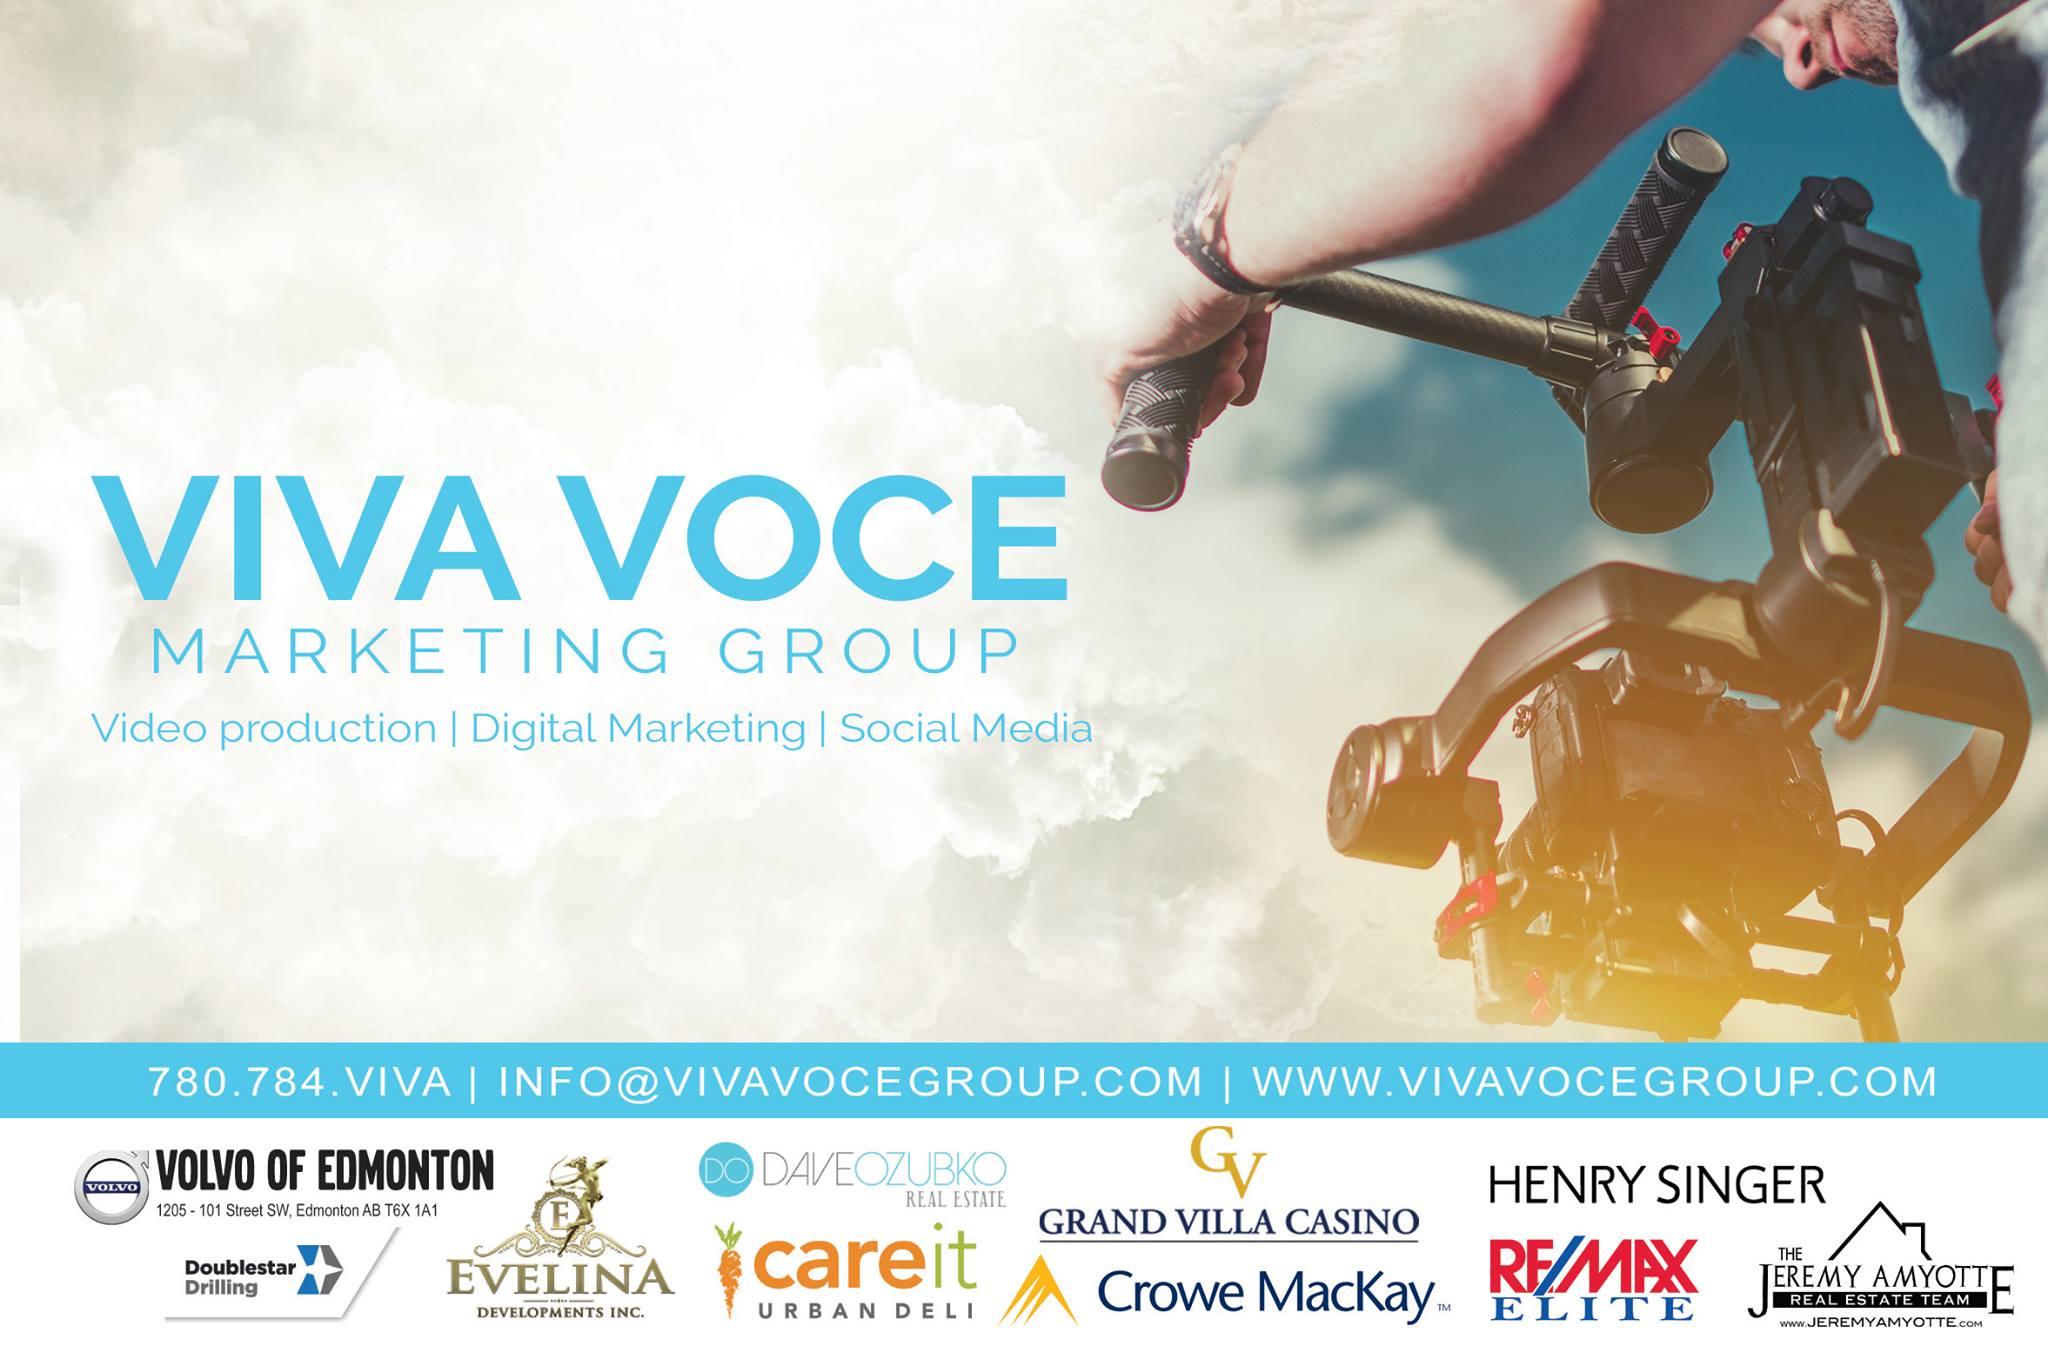 Viva Voce Group